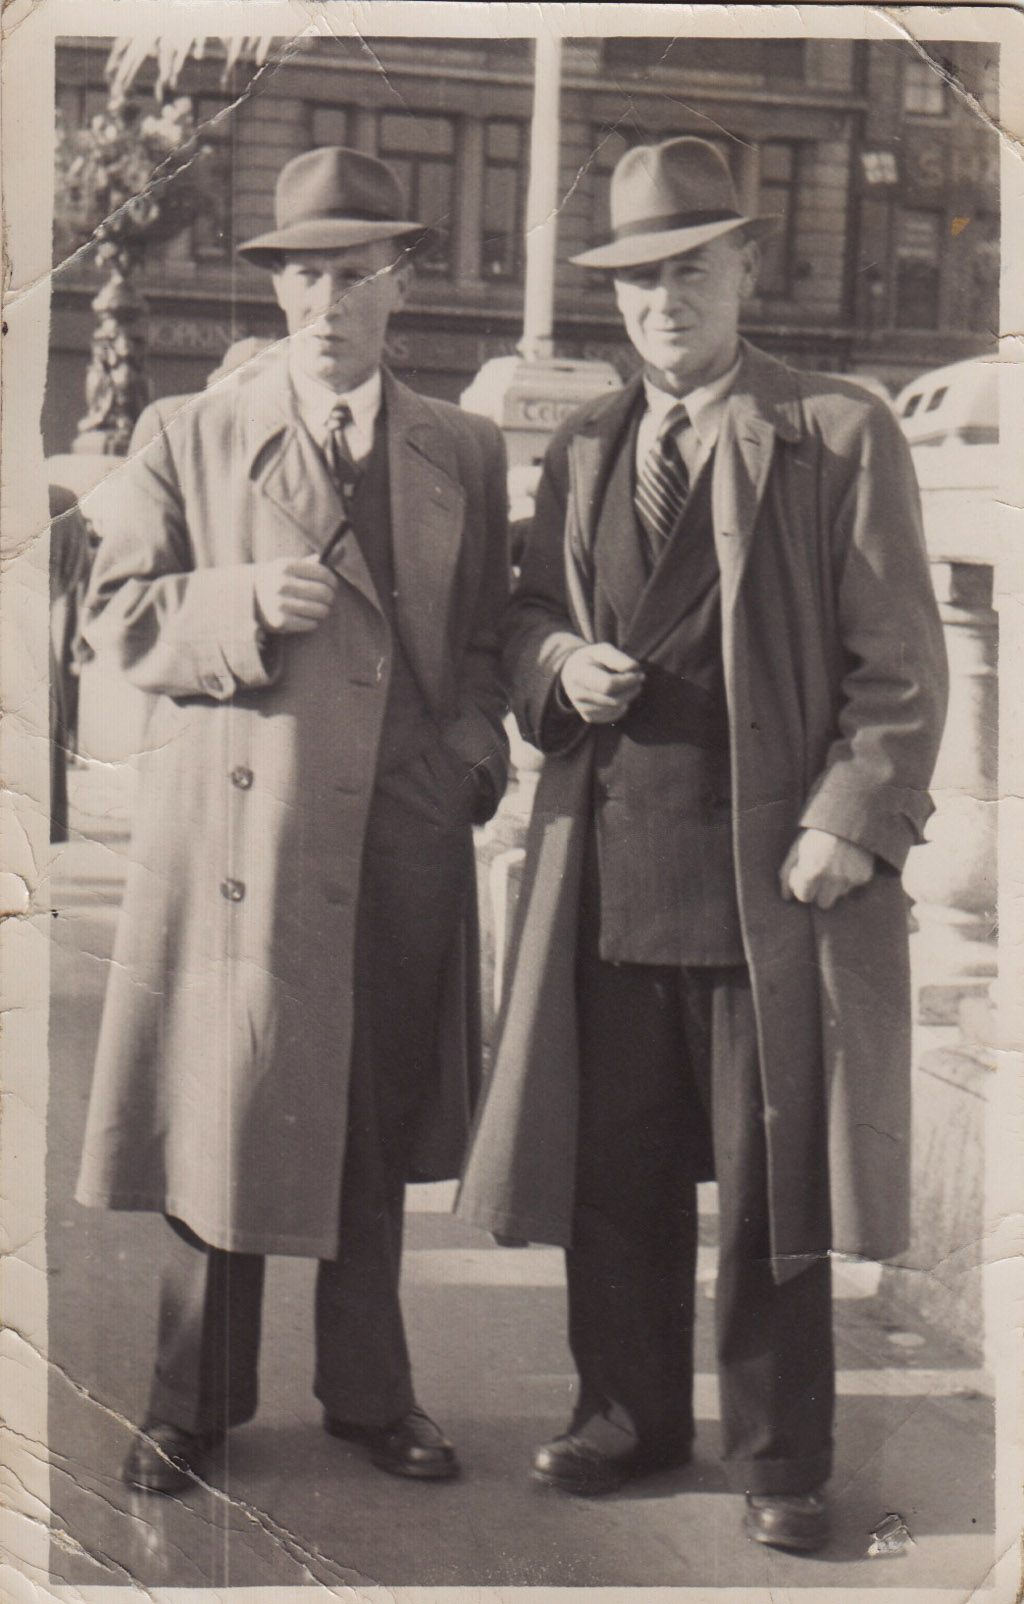 'Pa' and Bill Gannon on O'Connell Street 1954